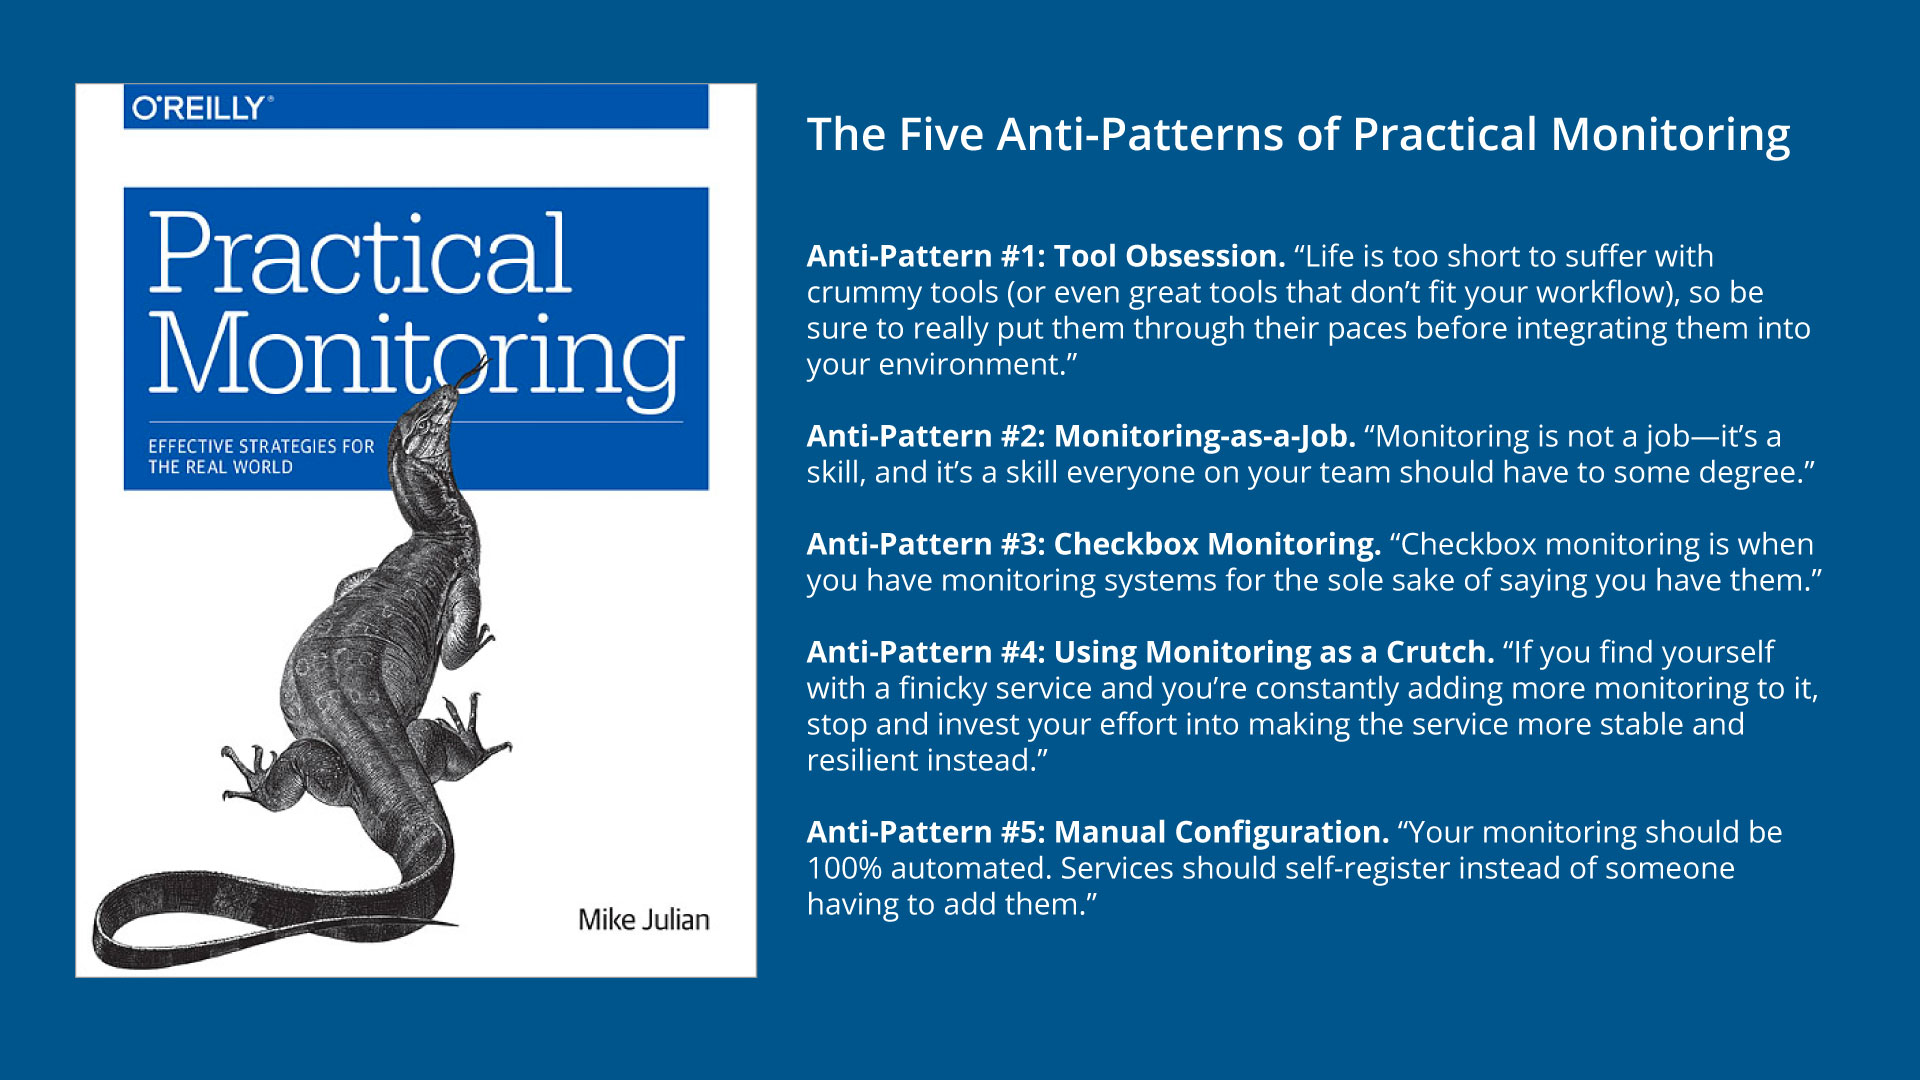 The Five Anti-Patterns of Practical Monitoring